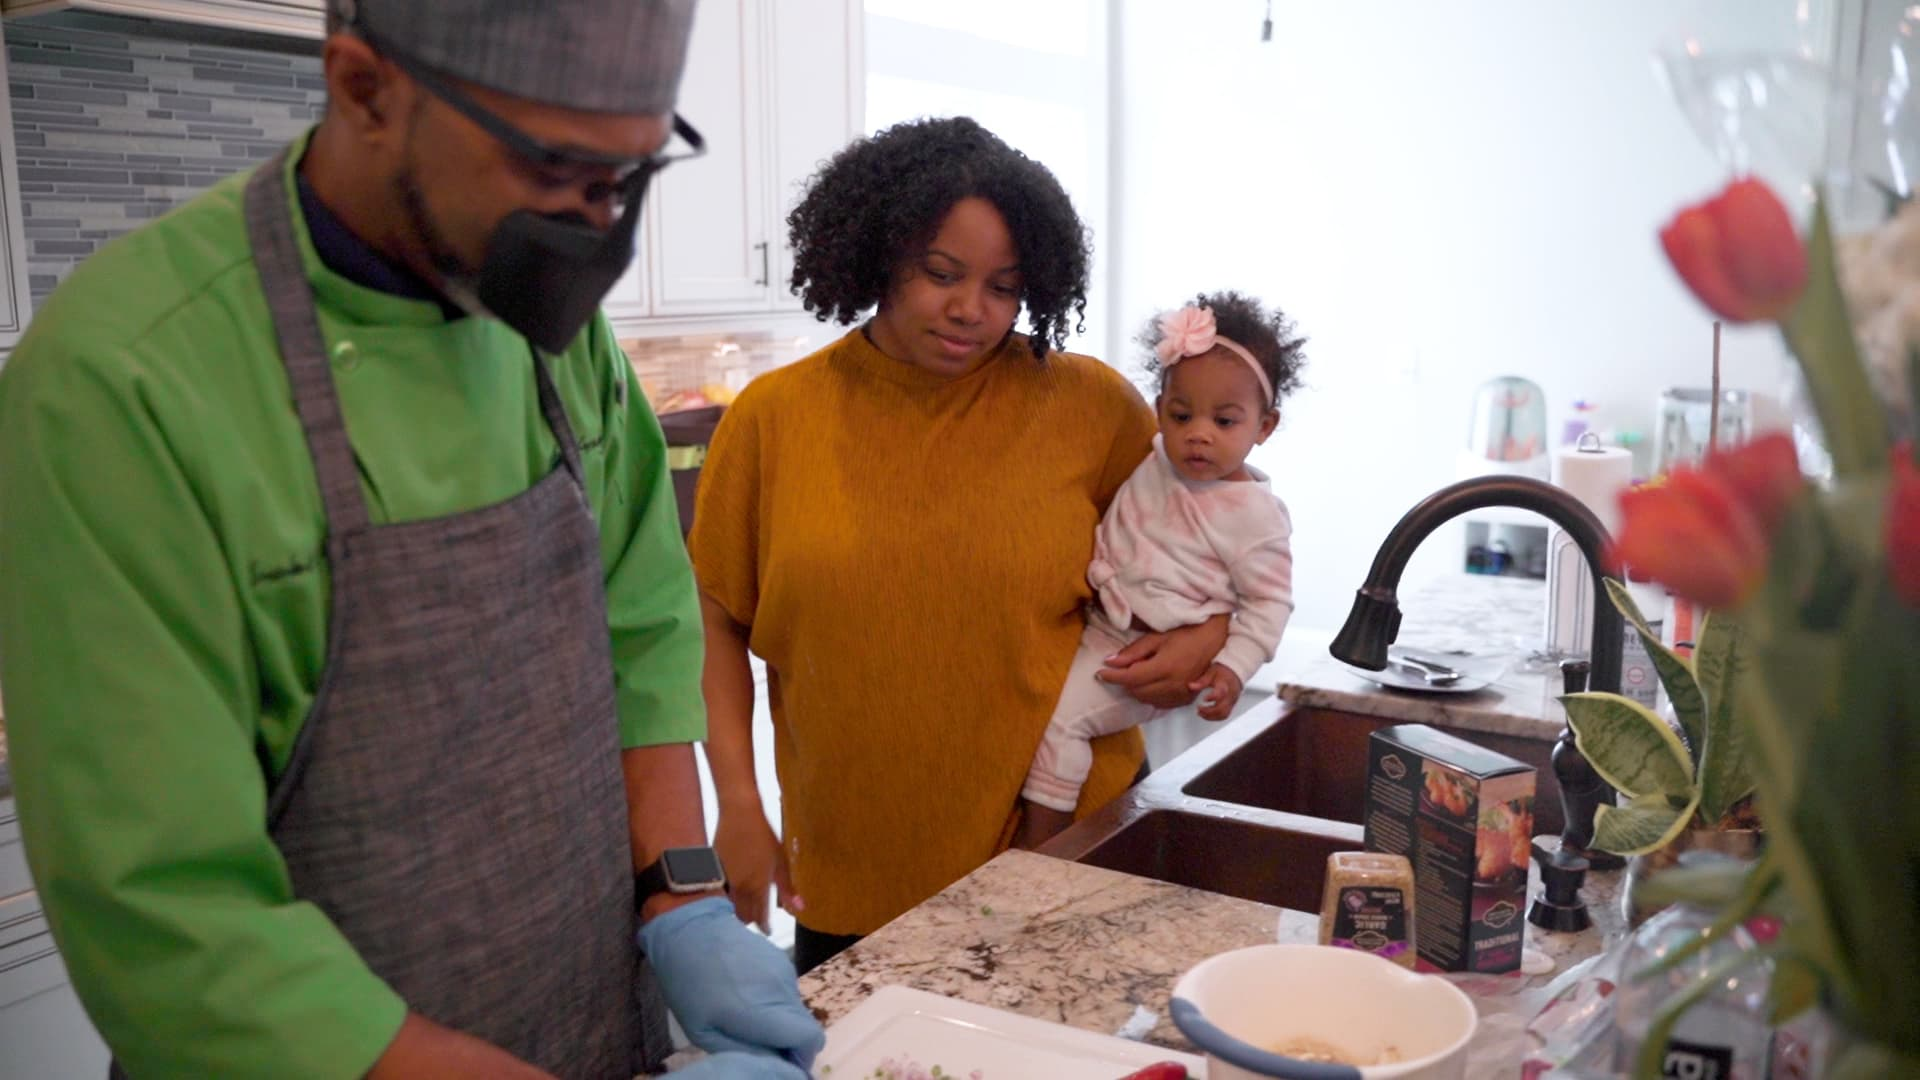 Johnson hires a private chef when she's in Atlanta. It's a worthwhile expense, she says, because it helps her eat balanced meals even when she's busy or exhausted.